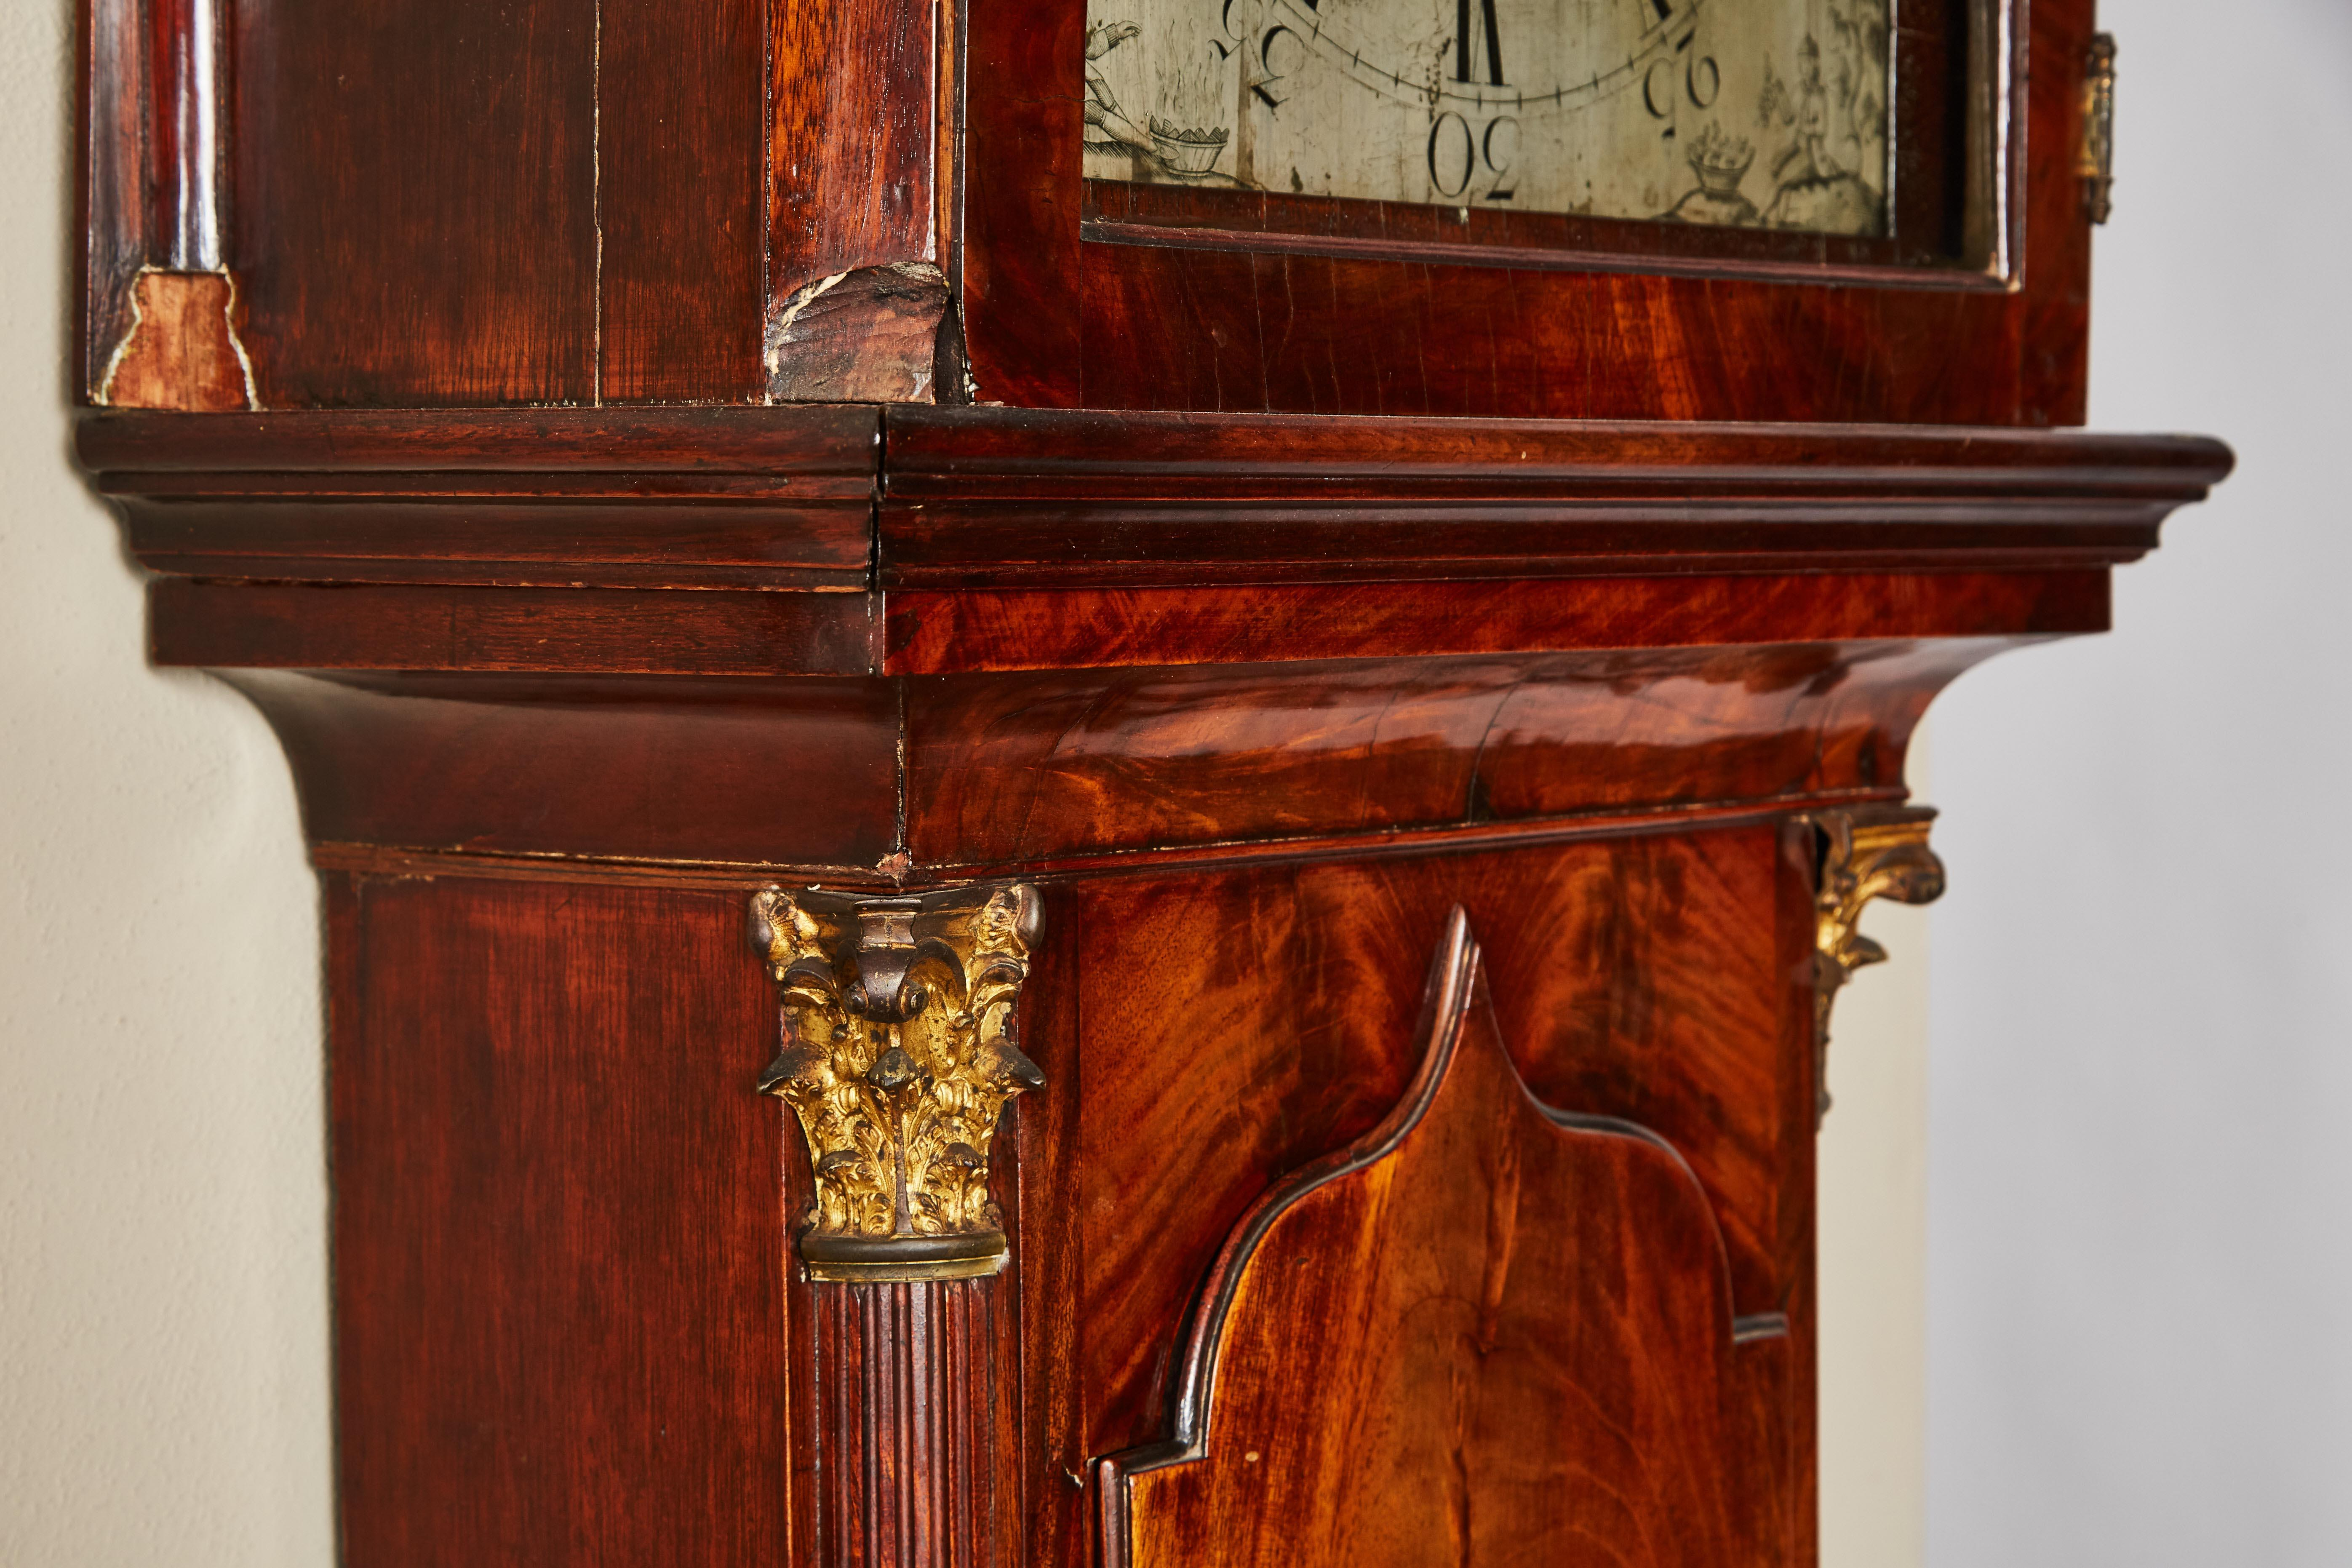 18th Century Mahogany English Flat Top Grandfather Clock By John Skinnier  With A Silver On Brass